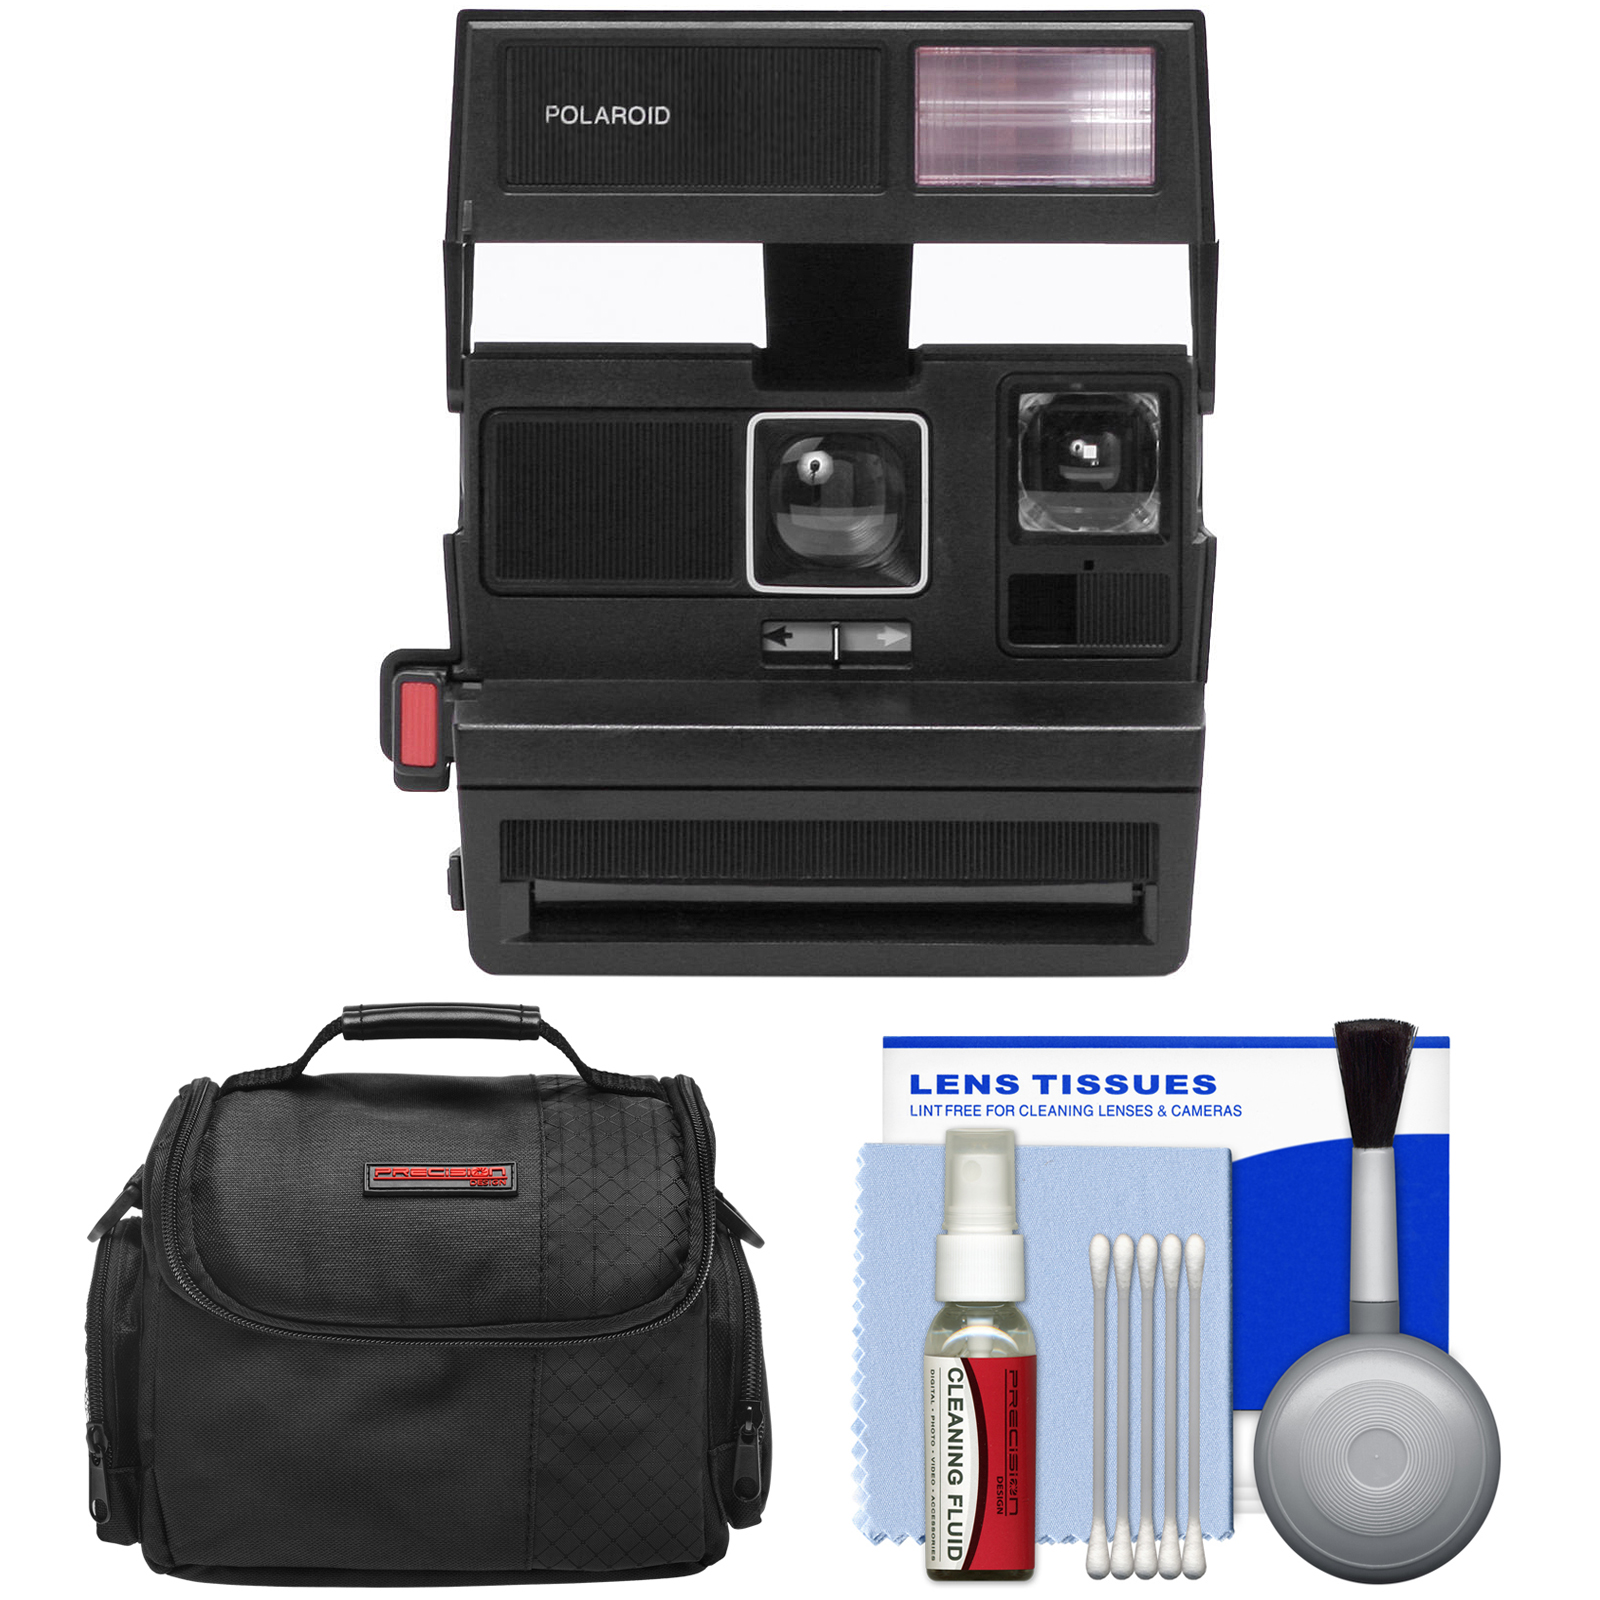 Impossible Polaroid 600 Square Instant Film Camera (Black) Refurbished by Impossible with Case + Kit by Impossible